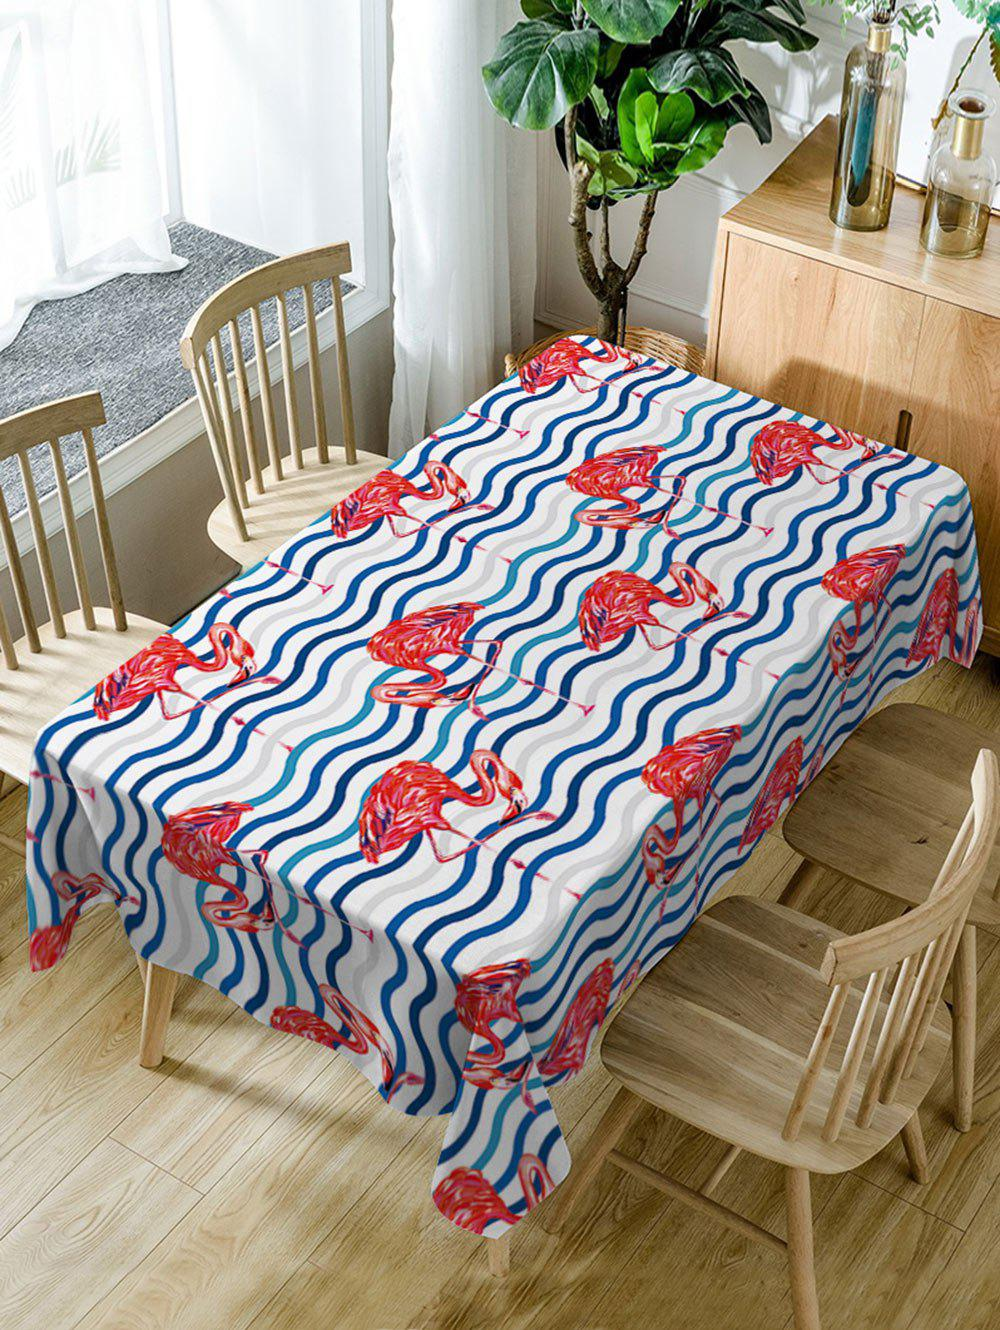 Flamingo Print Waterproof Table Cloth - COLORMIX W54 INCH * L72 INCH